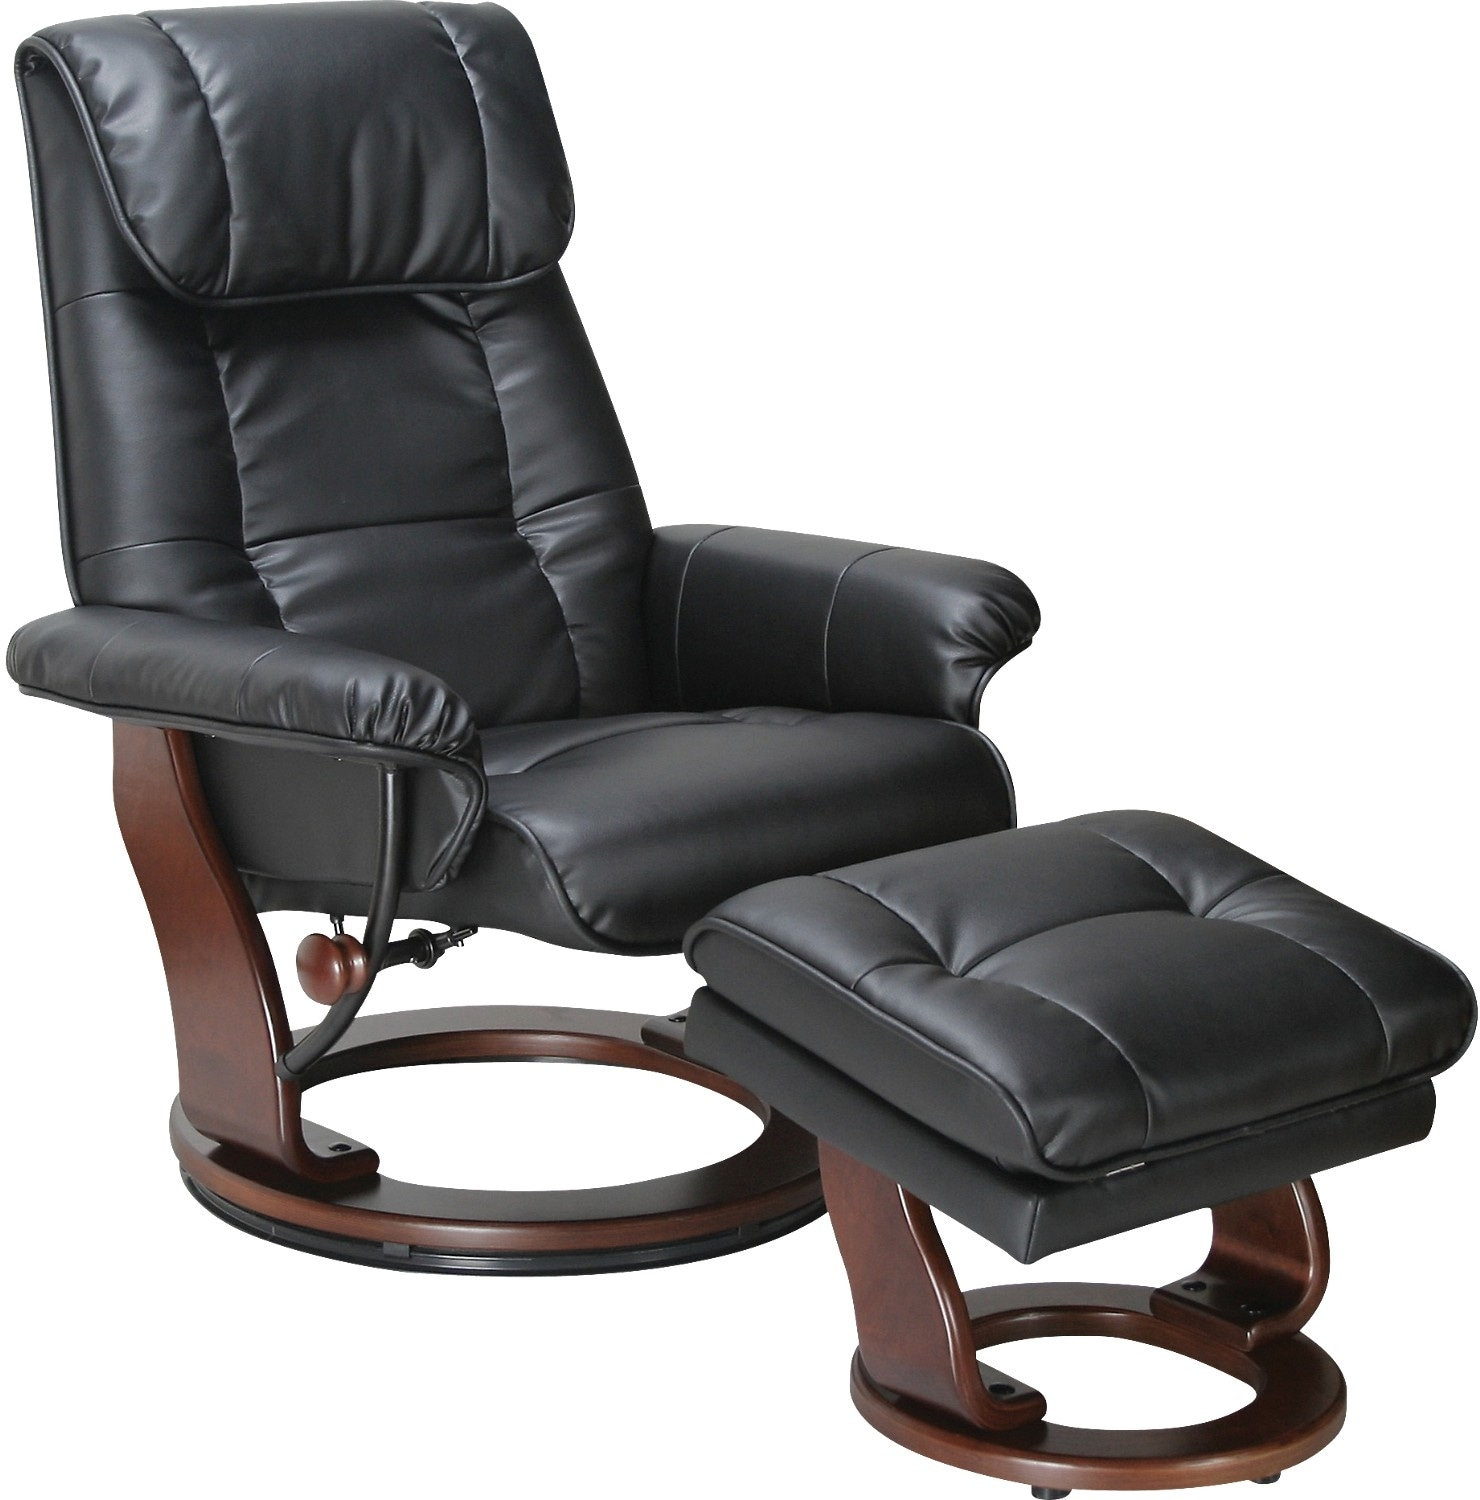 Dixon Black Reclining Chair Amp Ottoman The Brick